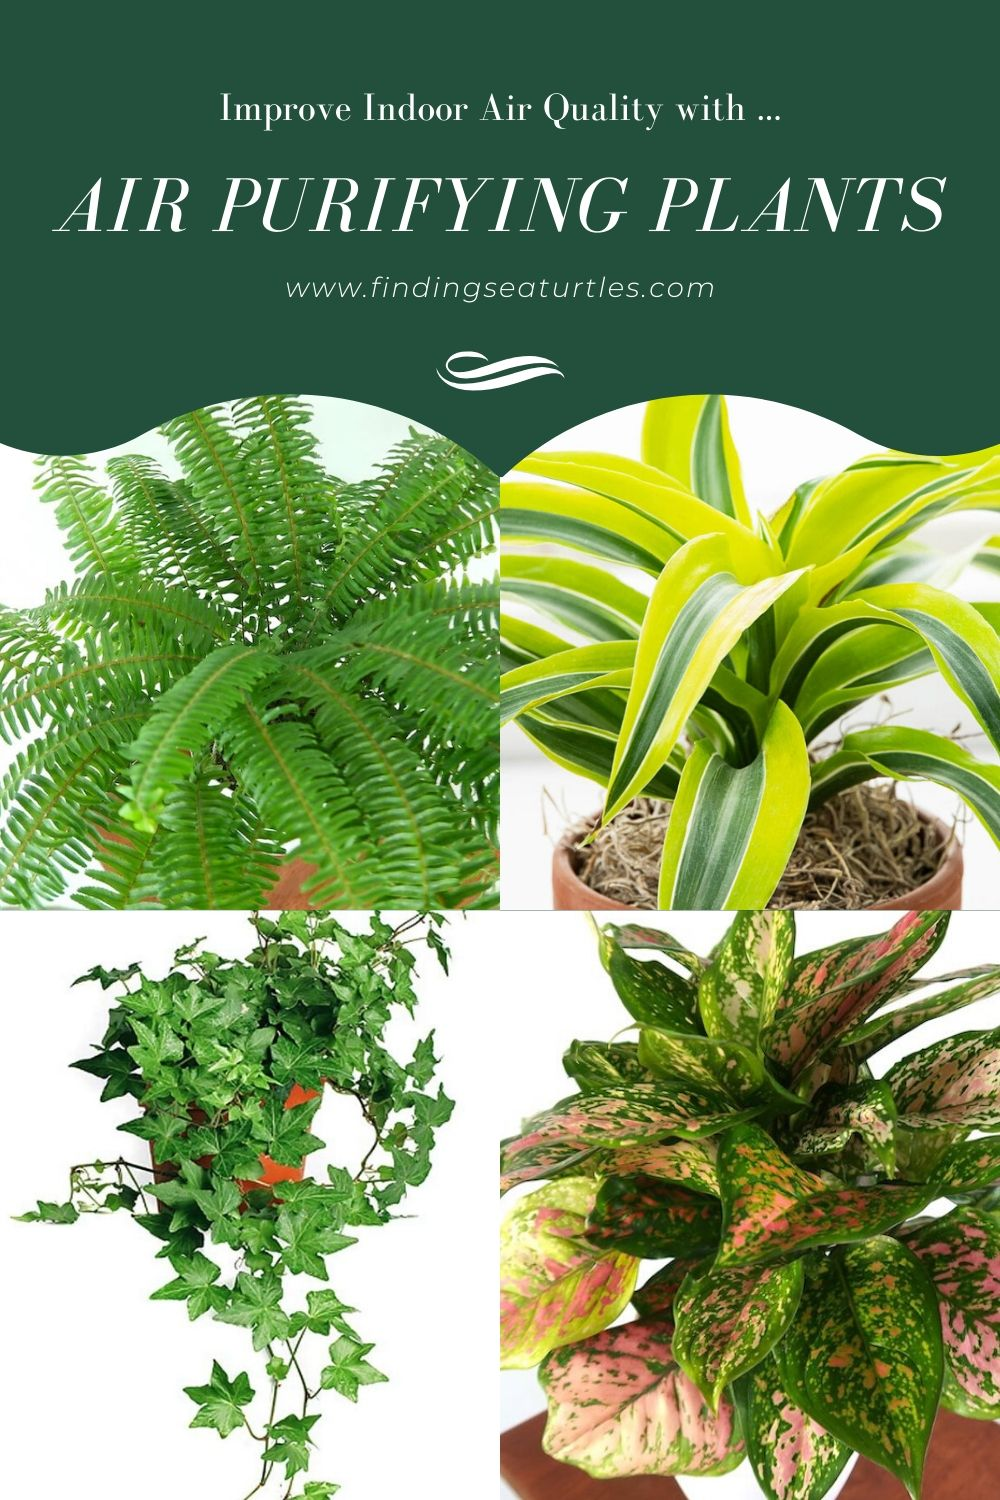 Improve Indoor Air Quality with Air Purifying Plants #HousePlants #AirCleaningPlants #AirPurifyingPlants #AirPurifyingHousePlants #IndoorPlants #CleanAir